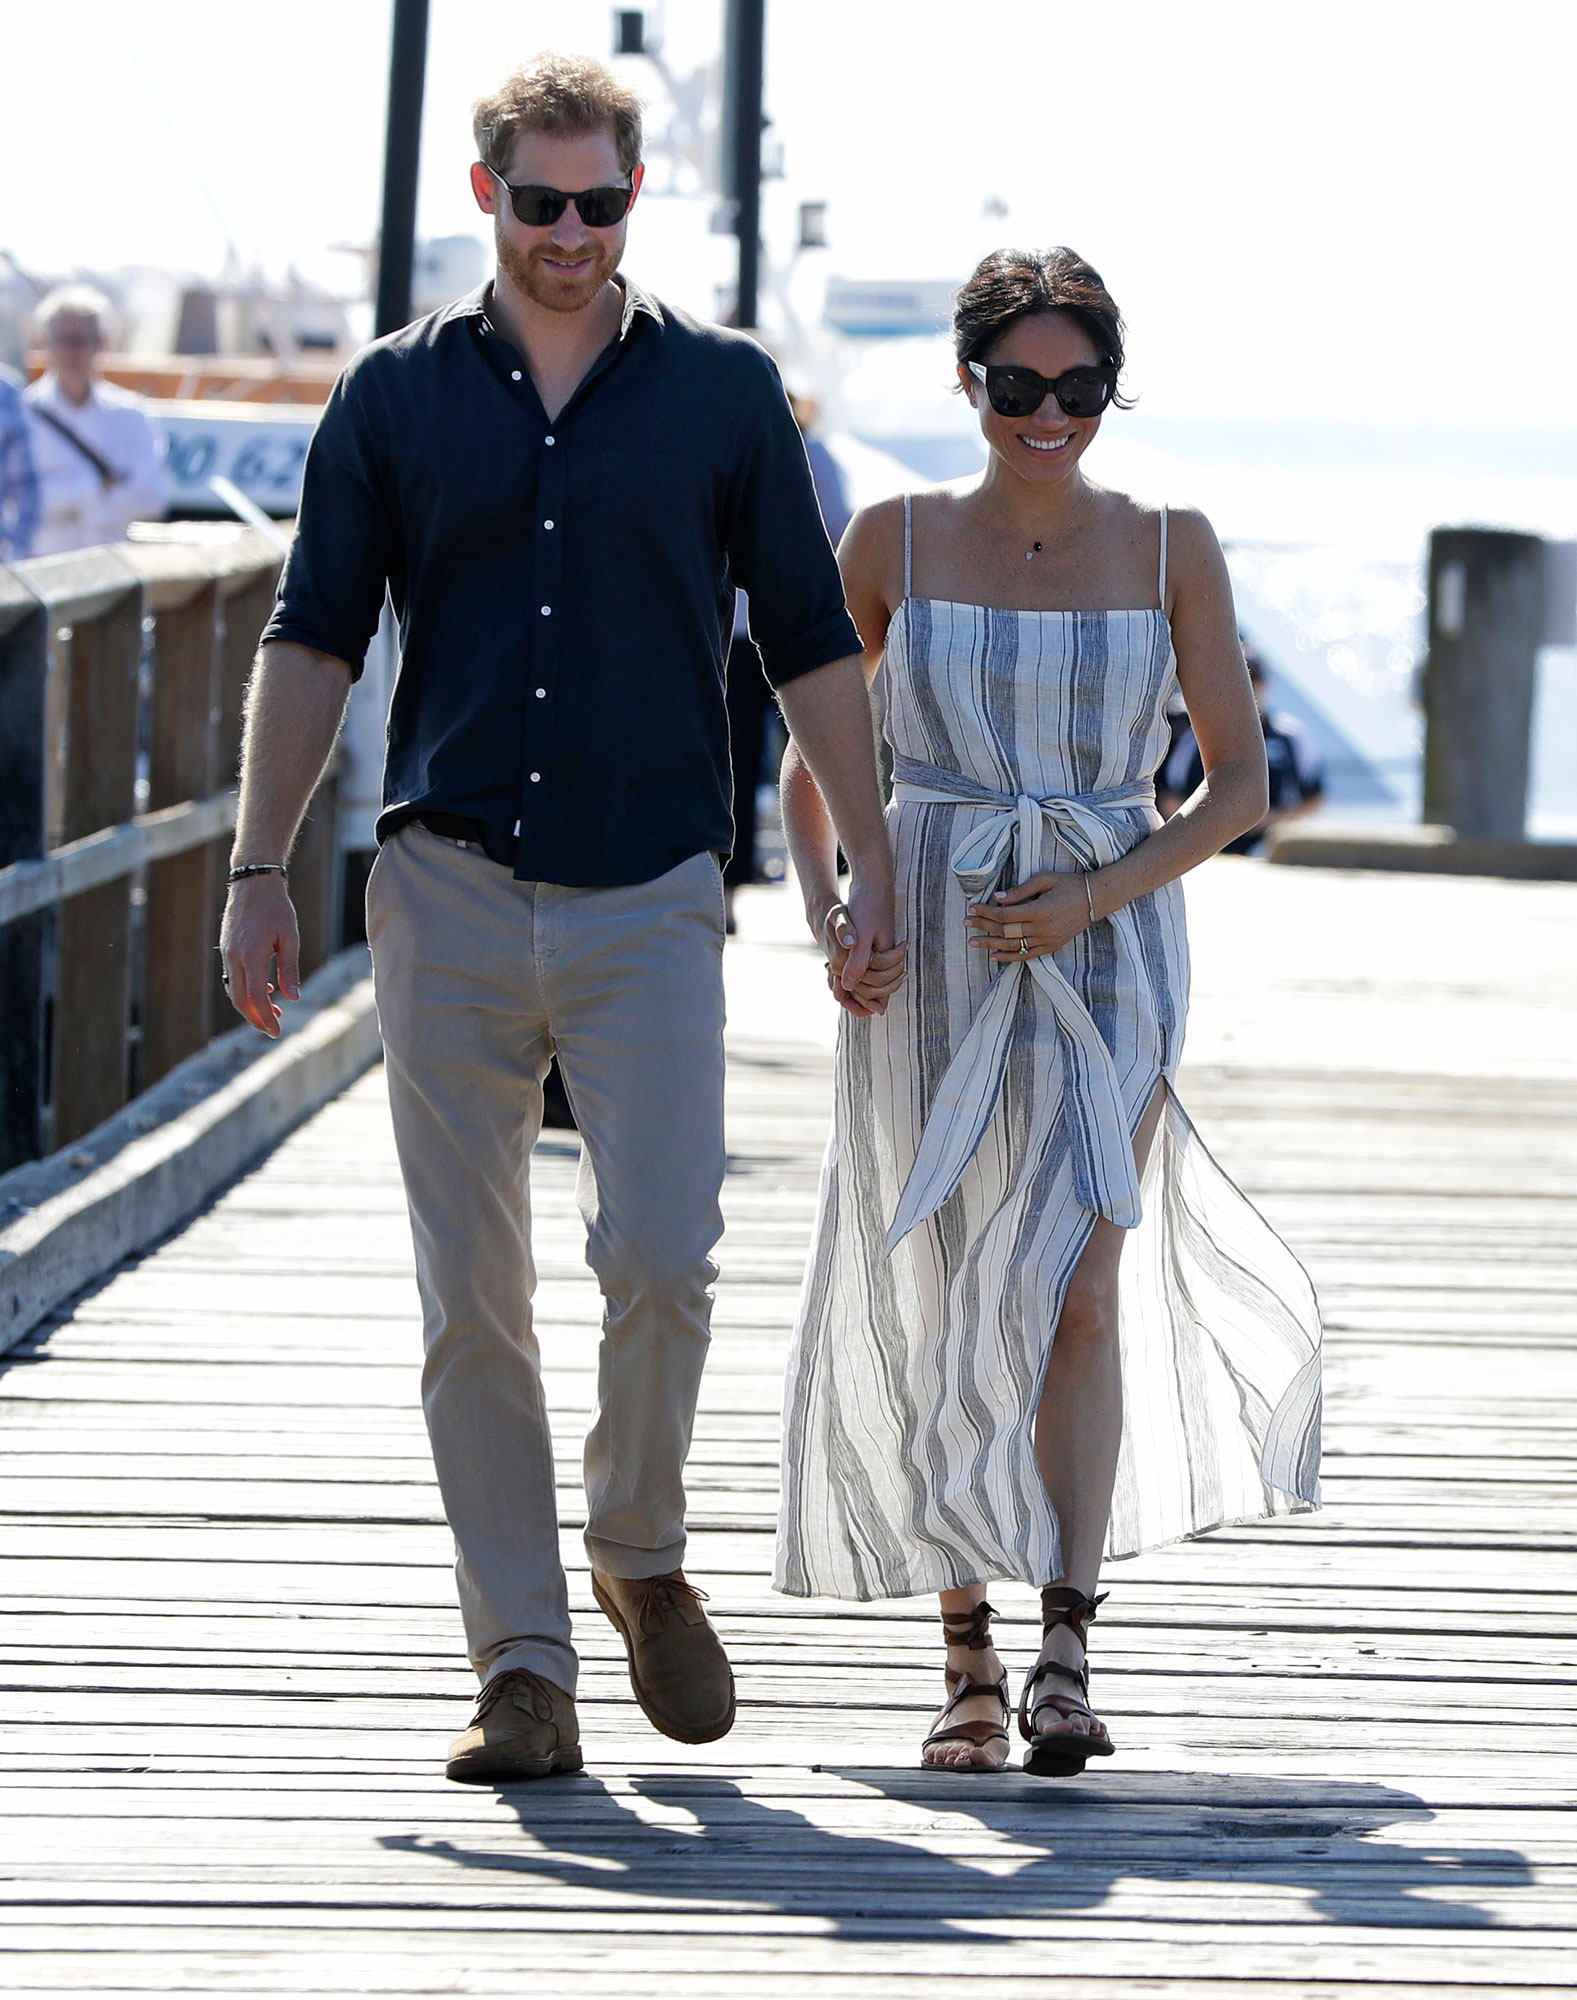 "<div class=""meta image-caption""><div class=""origin-logo origin-image none""><span>none</span></div><span class=""caption-text"">Britain's Prince Harry and Meghan, Duchess of Sussex walk along Kingfisher Bay Jetty during a visit to Fraser Island, Australia, Monday, Oct. 22, 2018. (Kirsty Wigglesworth, Pool/AP Photo)</span></div>"